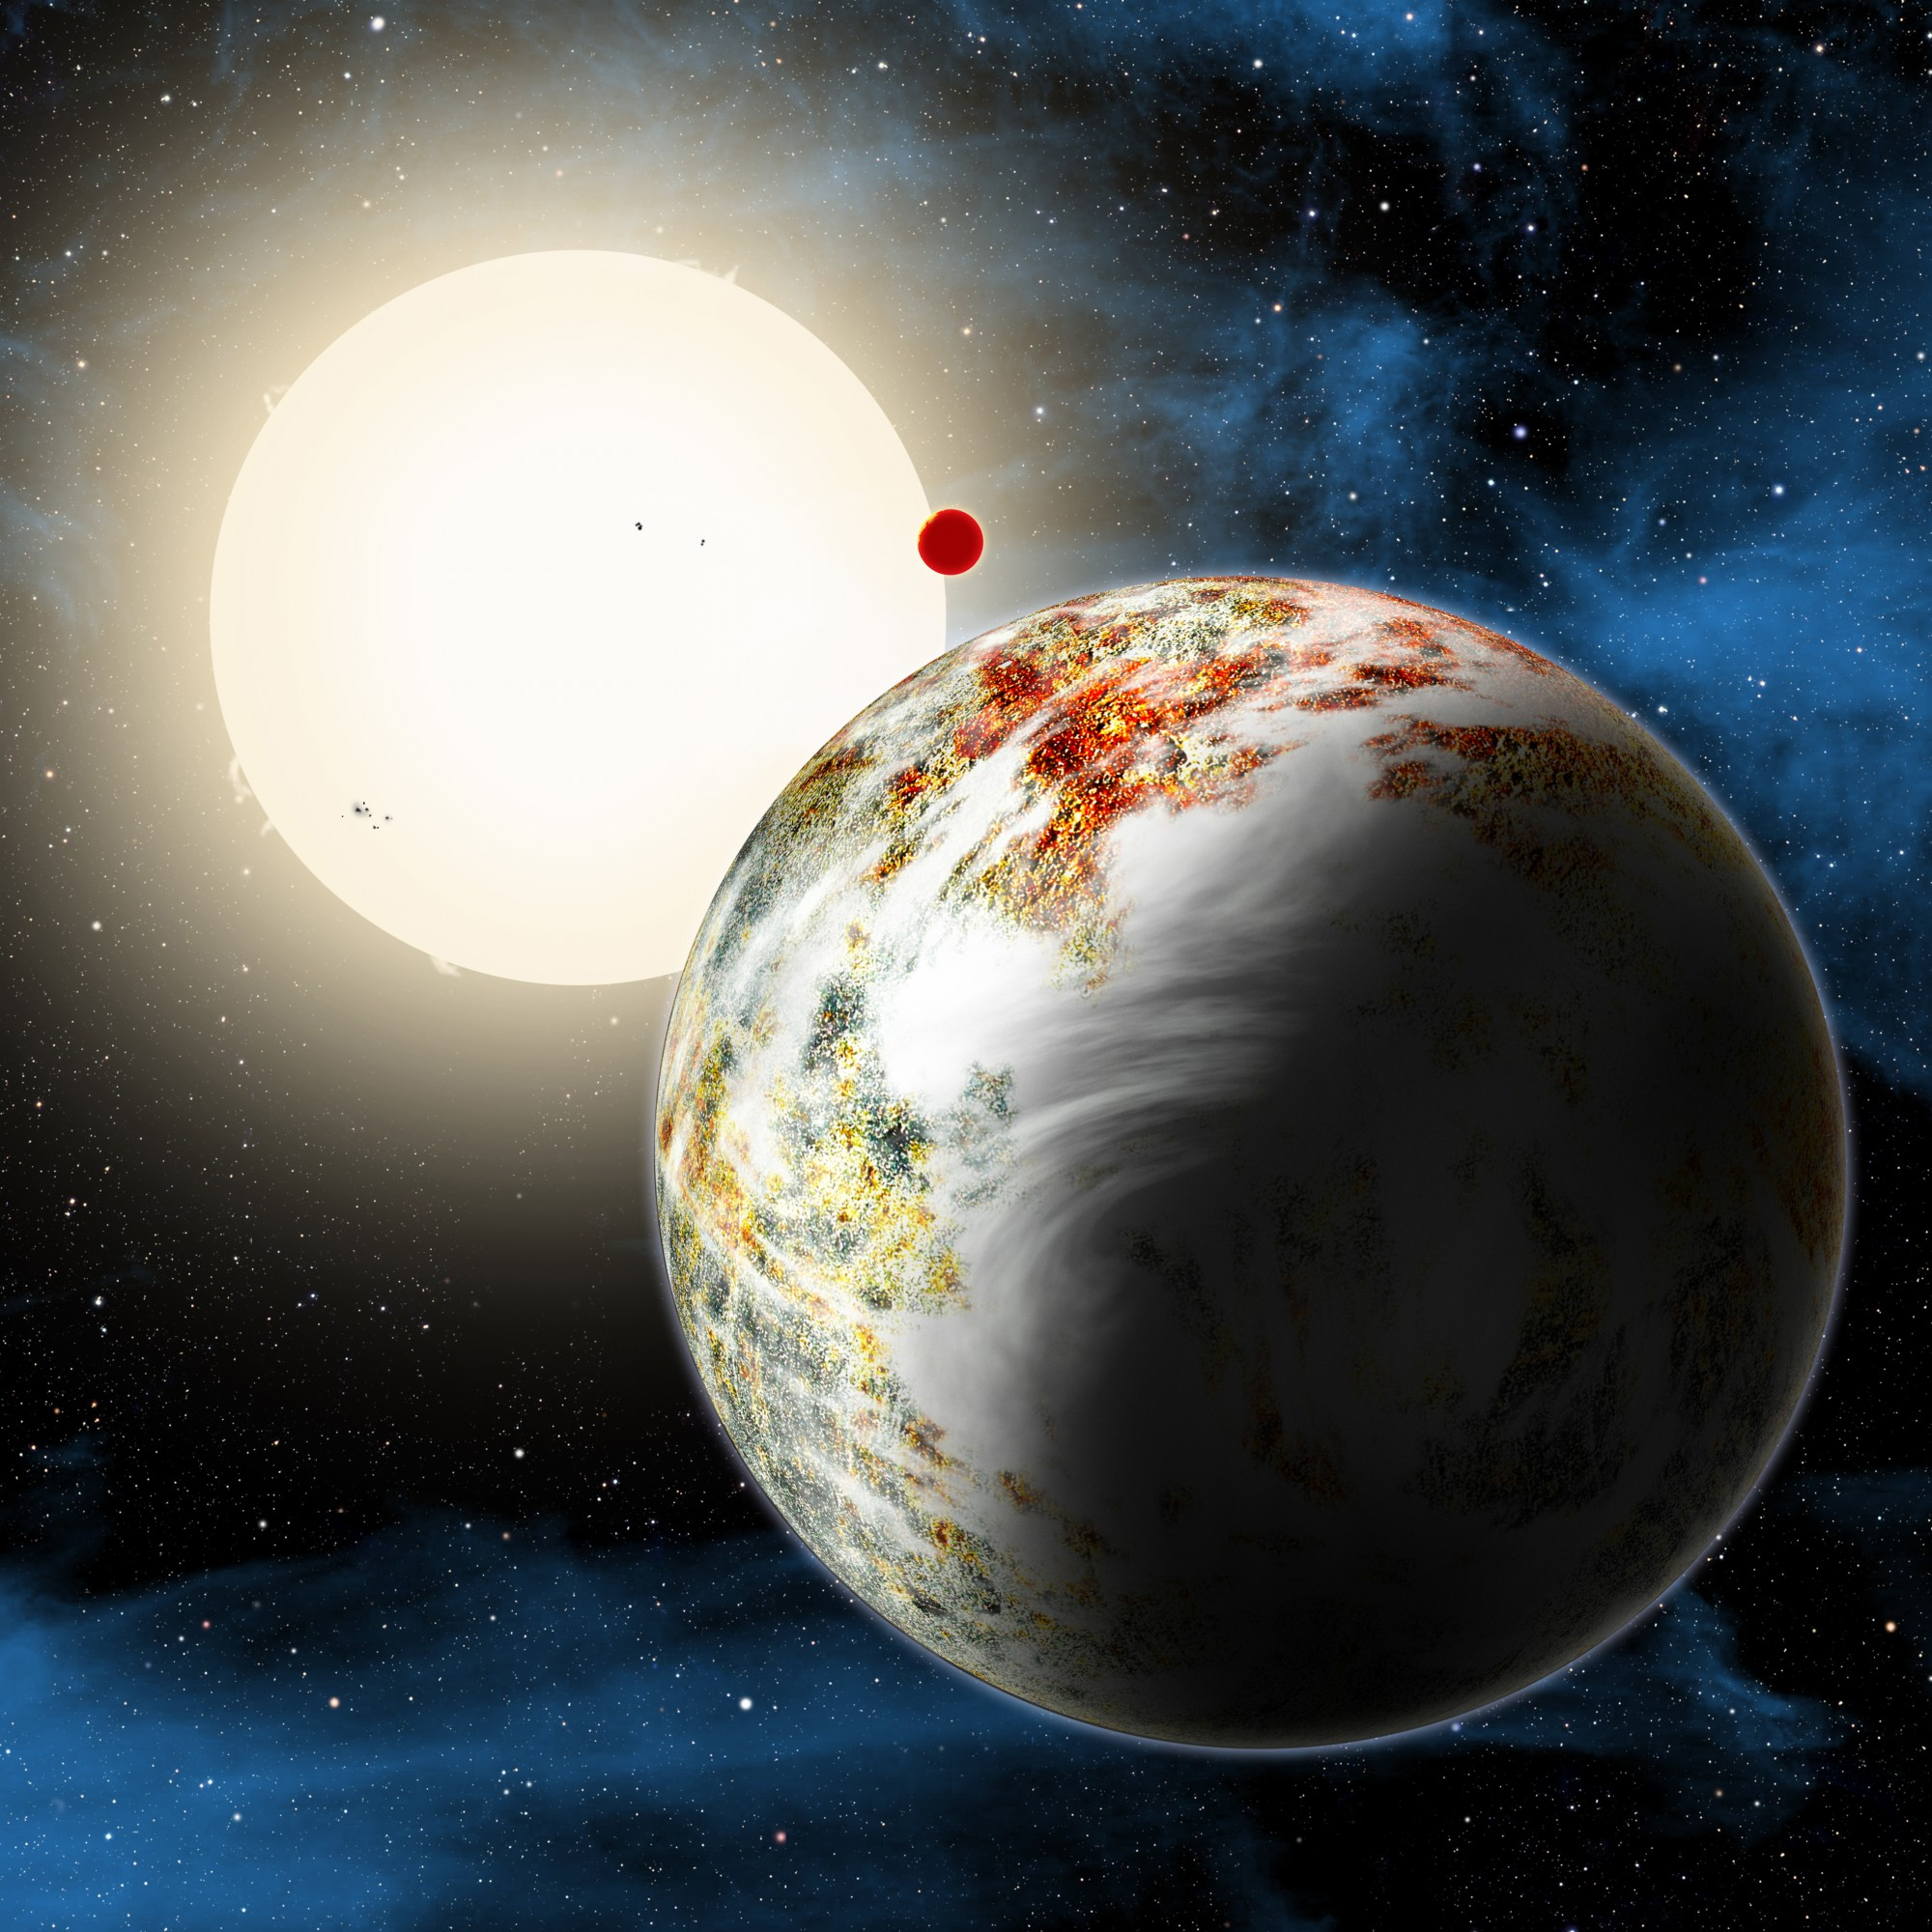 "The newly discovered ""mega-Earth"" Kepler-10c dominates the foreground in this artist's conception. Its sibling, the lava world Kepler-10b, is in the background. Both orbit a sunlike star. Kepler-10c has a diameter of about 18,000 miles, 2.3 times as large as Earth, and weighs 17 times as much. Therefore it is all solids, although it may possess a thin atmosphere shown here as wispy clouds. Image: David A. Aguilar (CfA)"